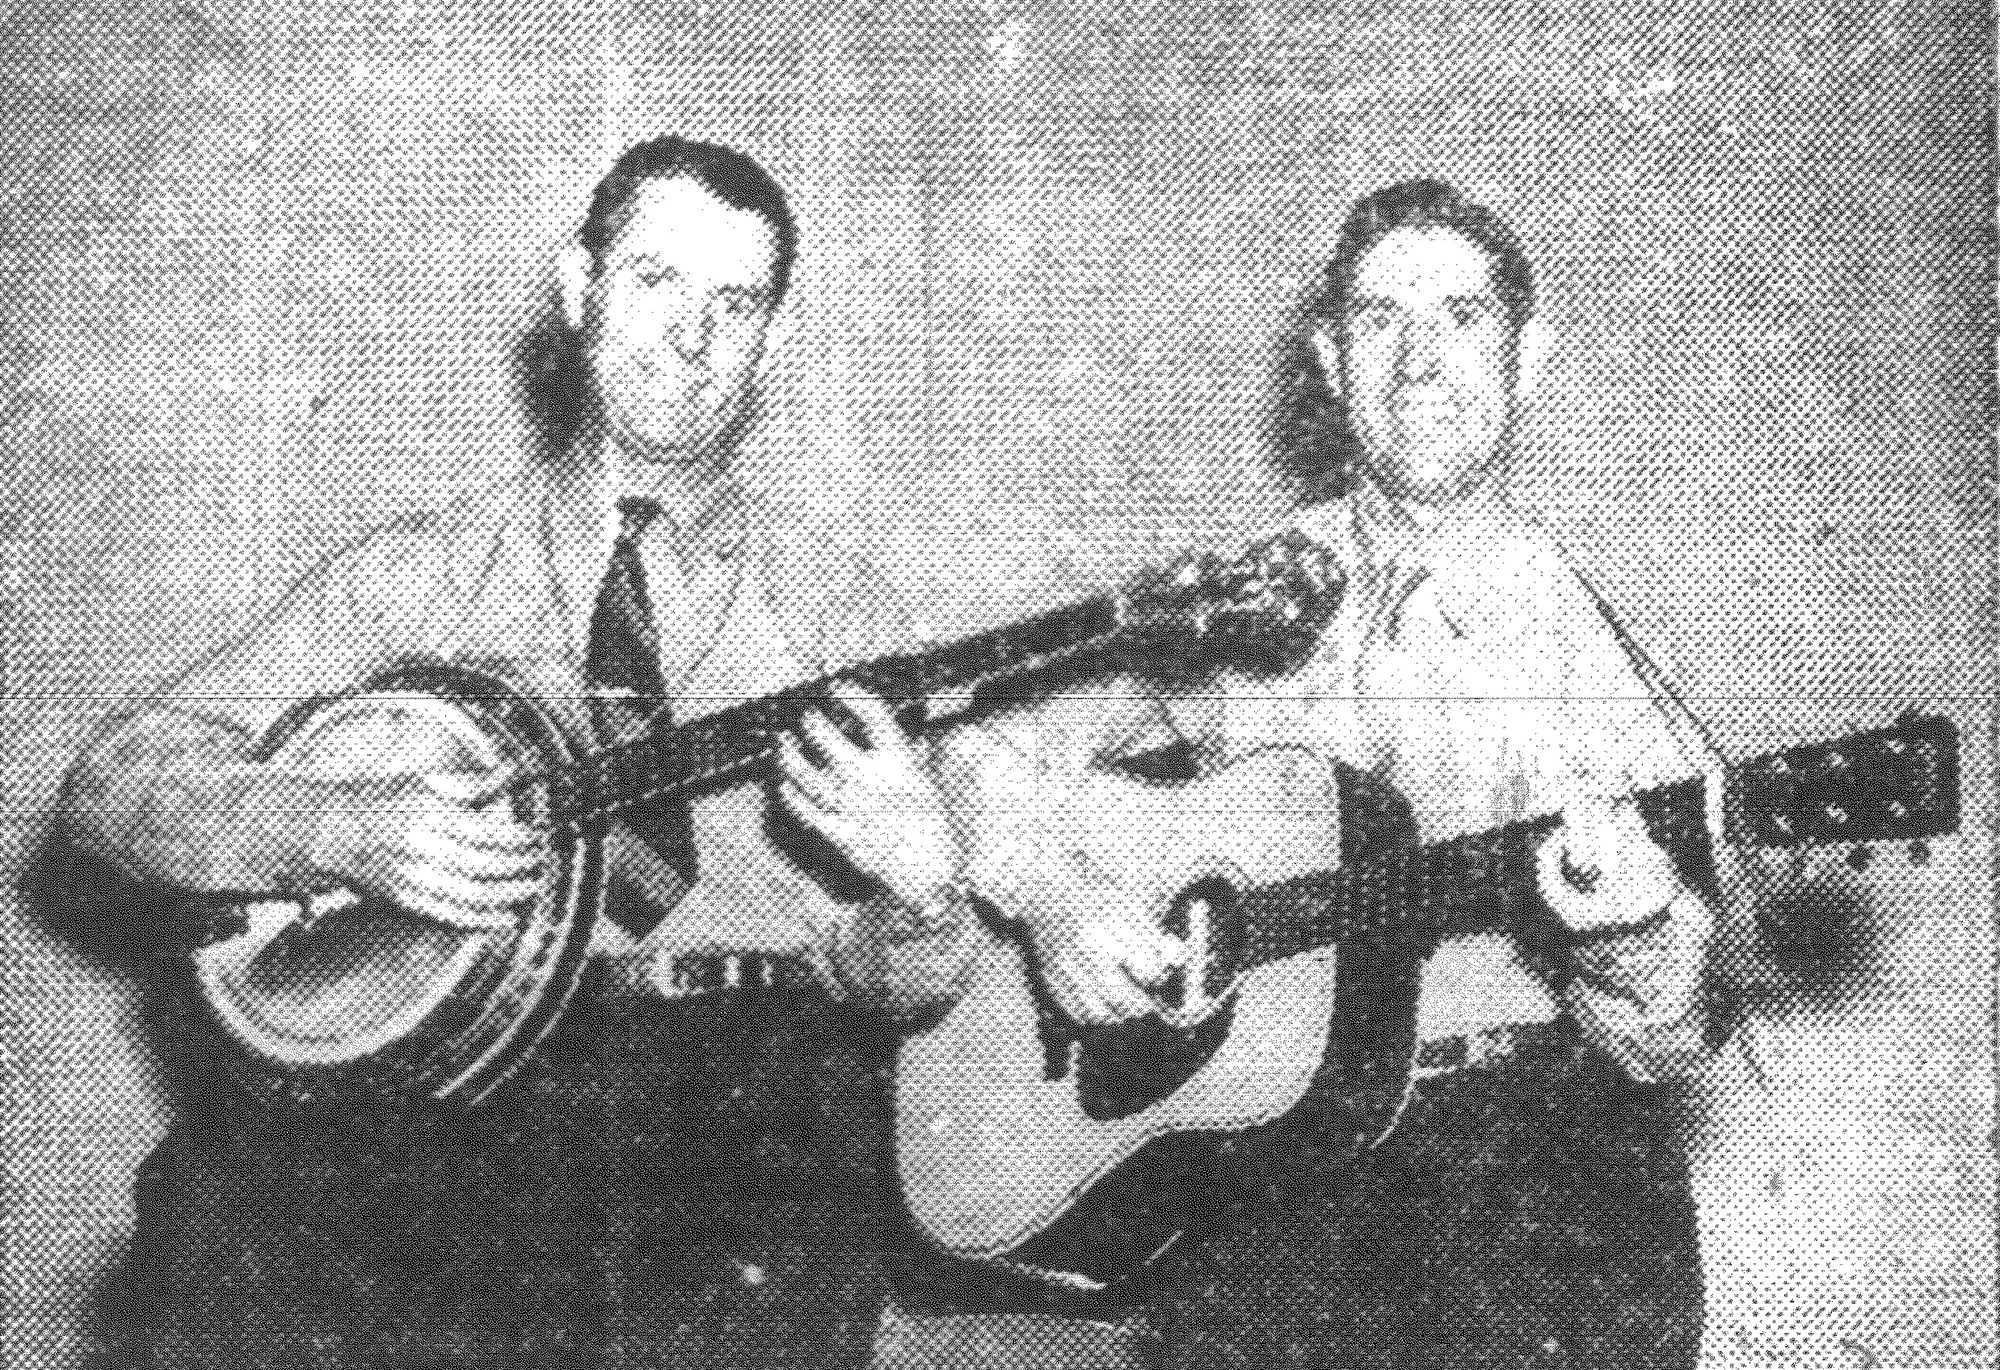 1943 - Sam and Kirk McGee, the Boys from Tennessee, who are just two of the WSM Grande Ole Opry stars appearing in Sumter on Oct. 20 in a large tent theater seating 3,000 located on Monaghan's circus lot.